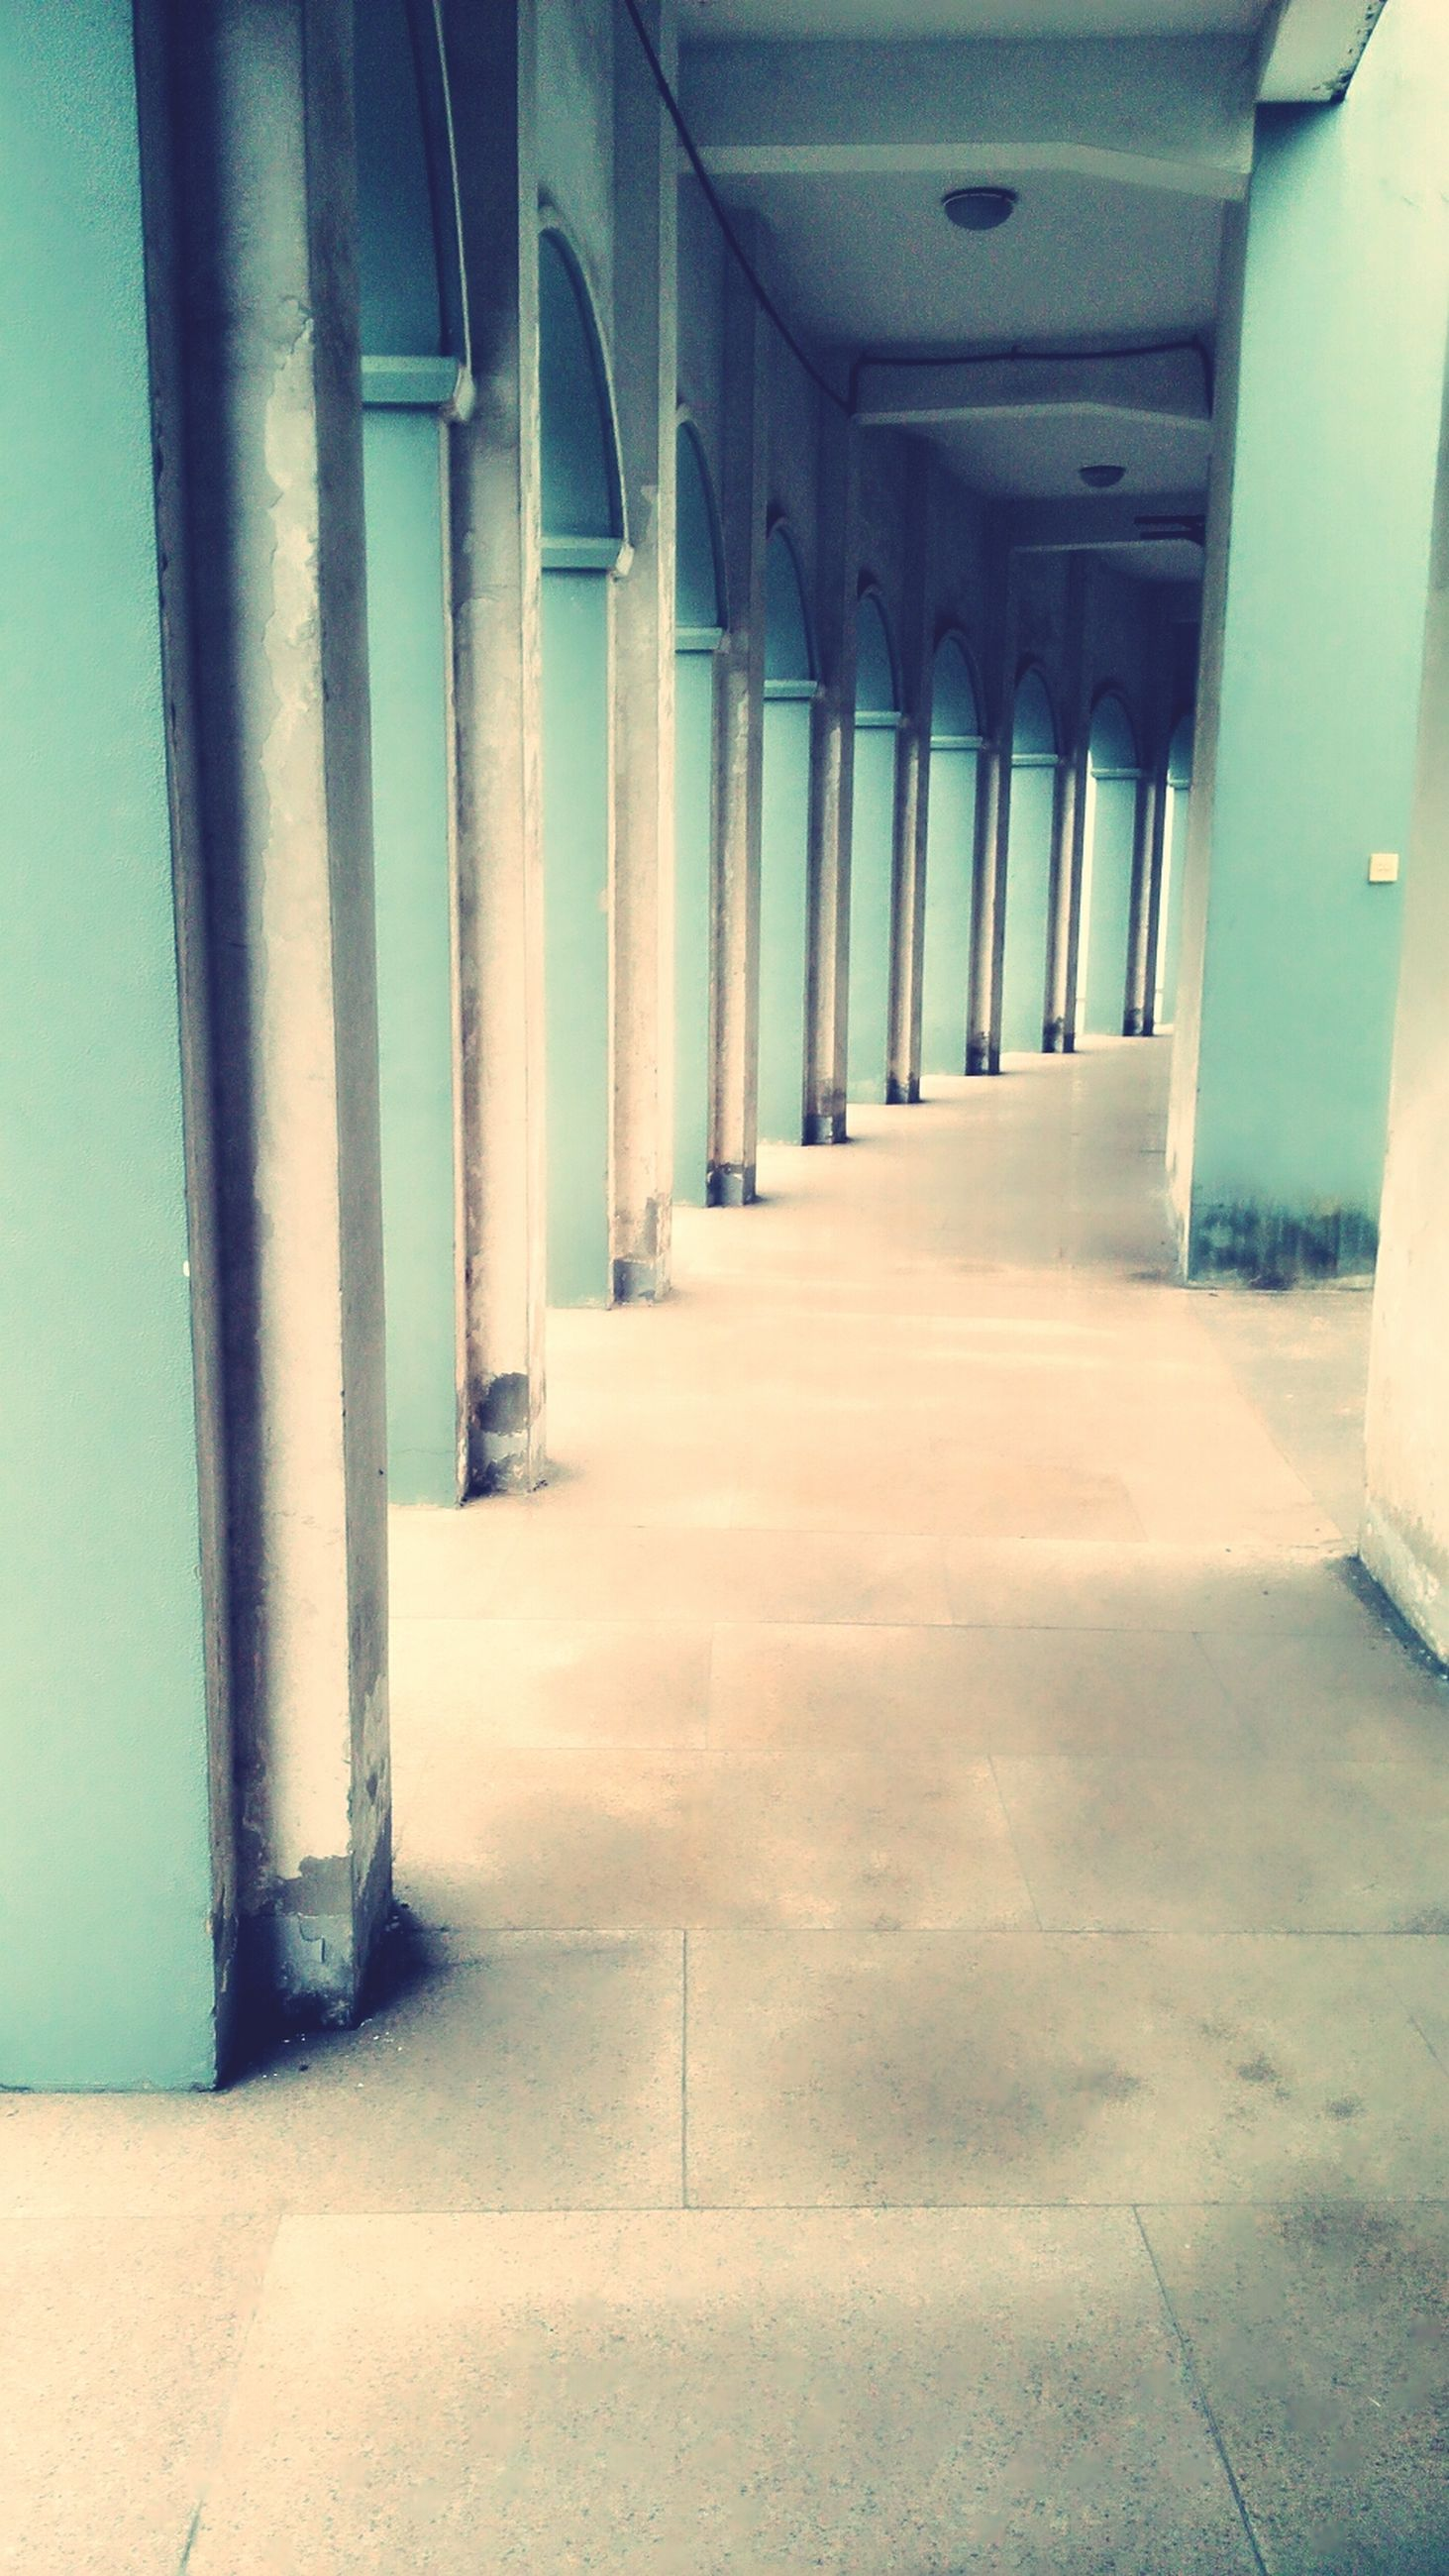 architecture, indoors, built structure, the way forward, corridor, in a row, empty, diminishing perspective, architectural column, flooring, column, absence, sunlight, narrow, building, vanishing point, day, no people, colonnade, tiled floor